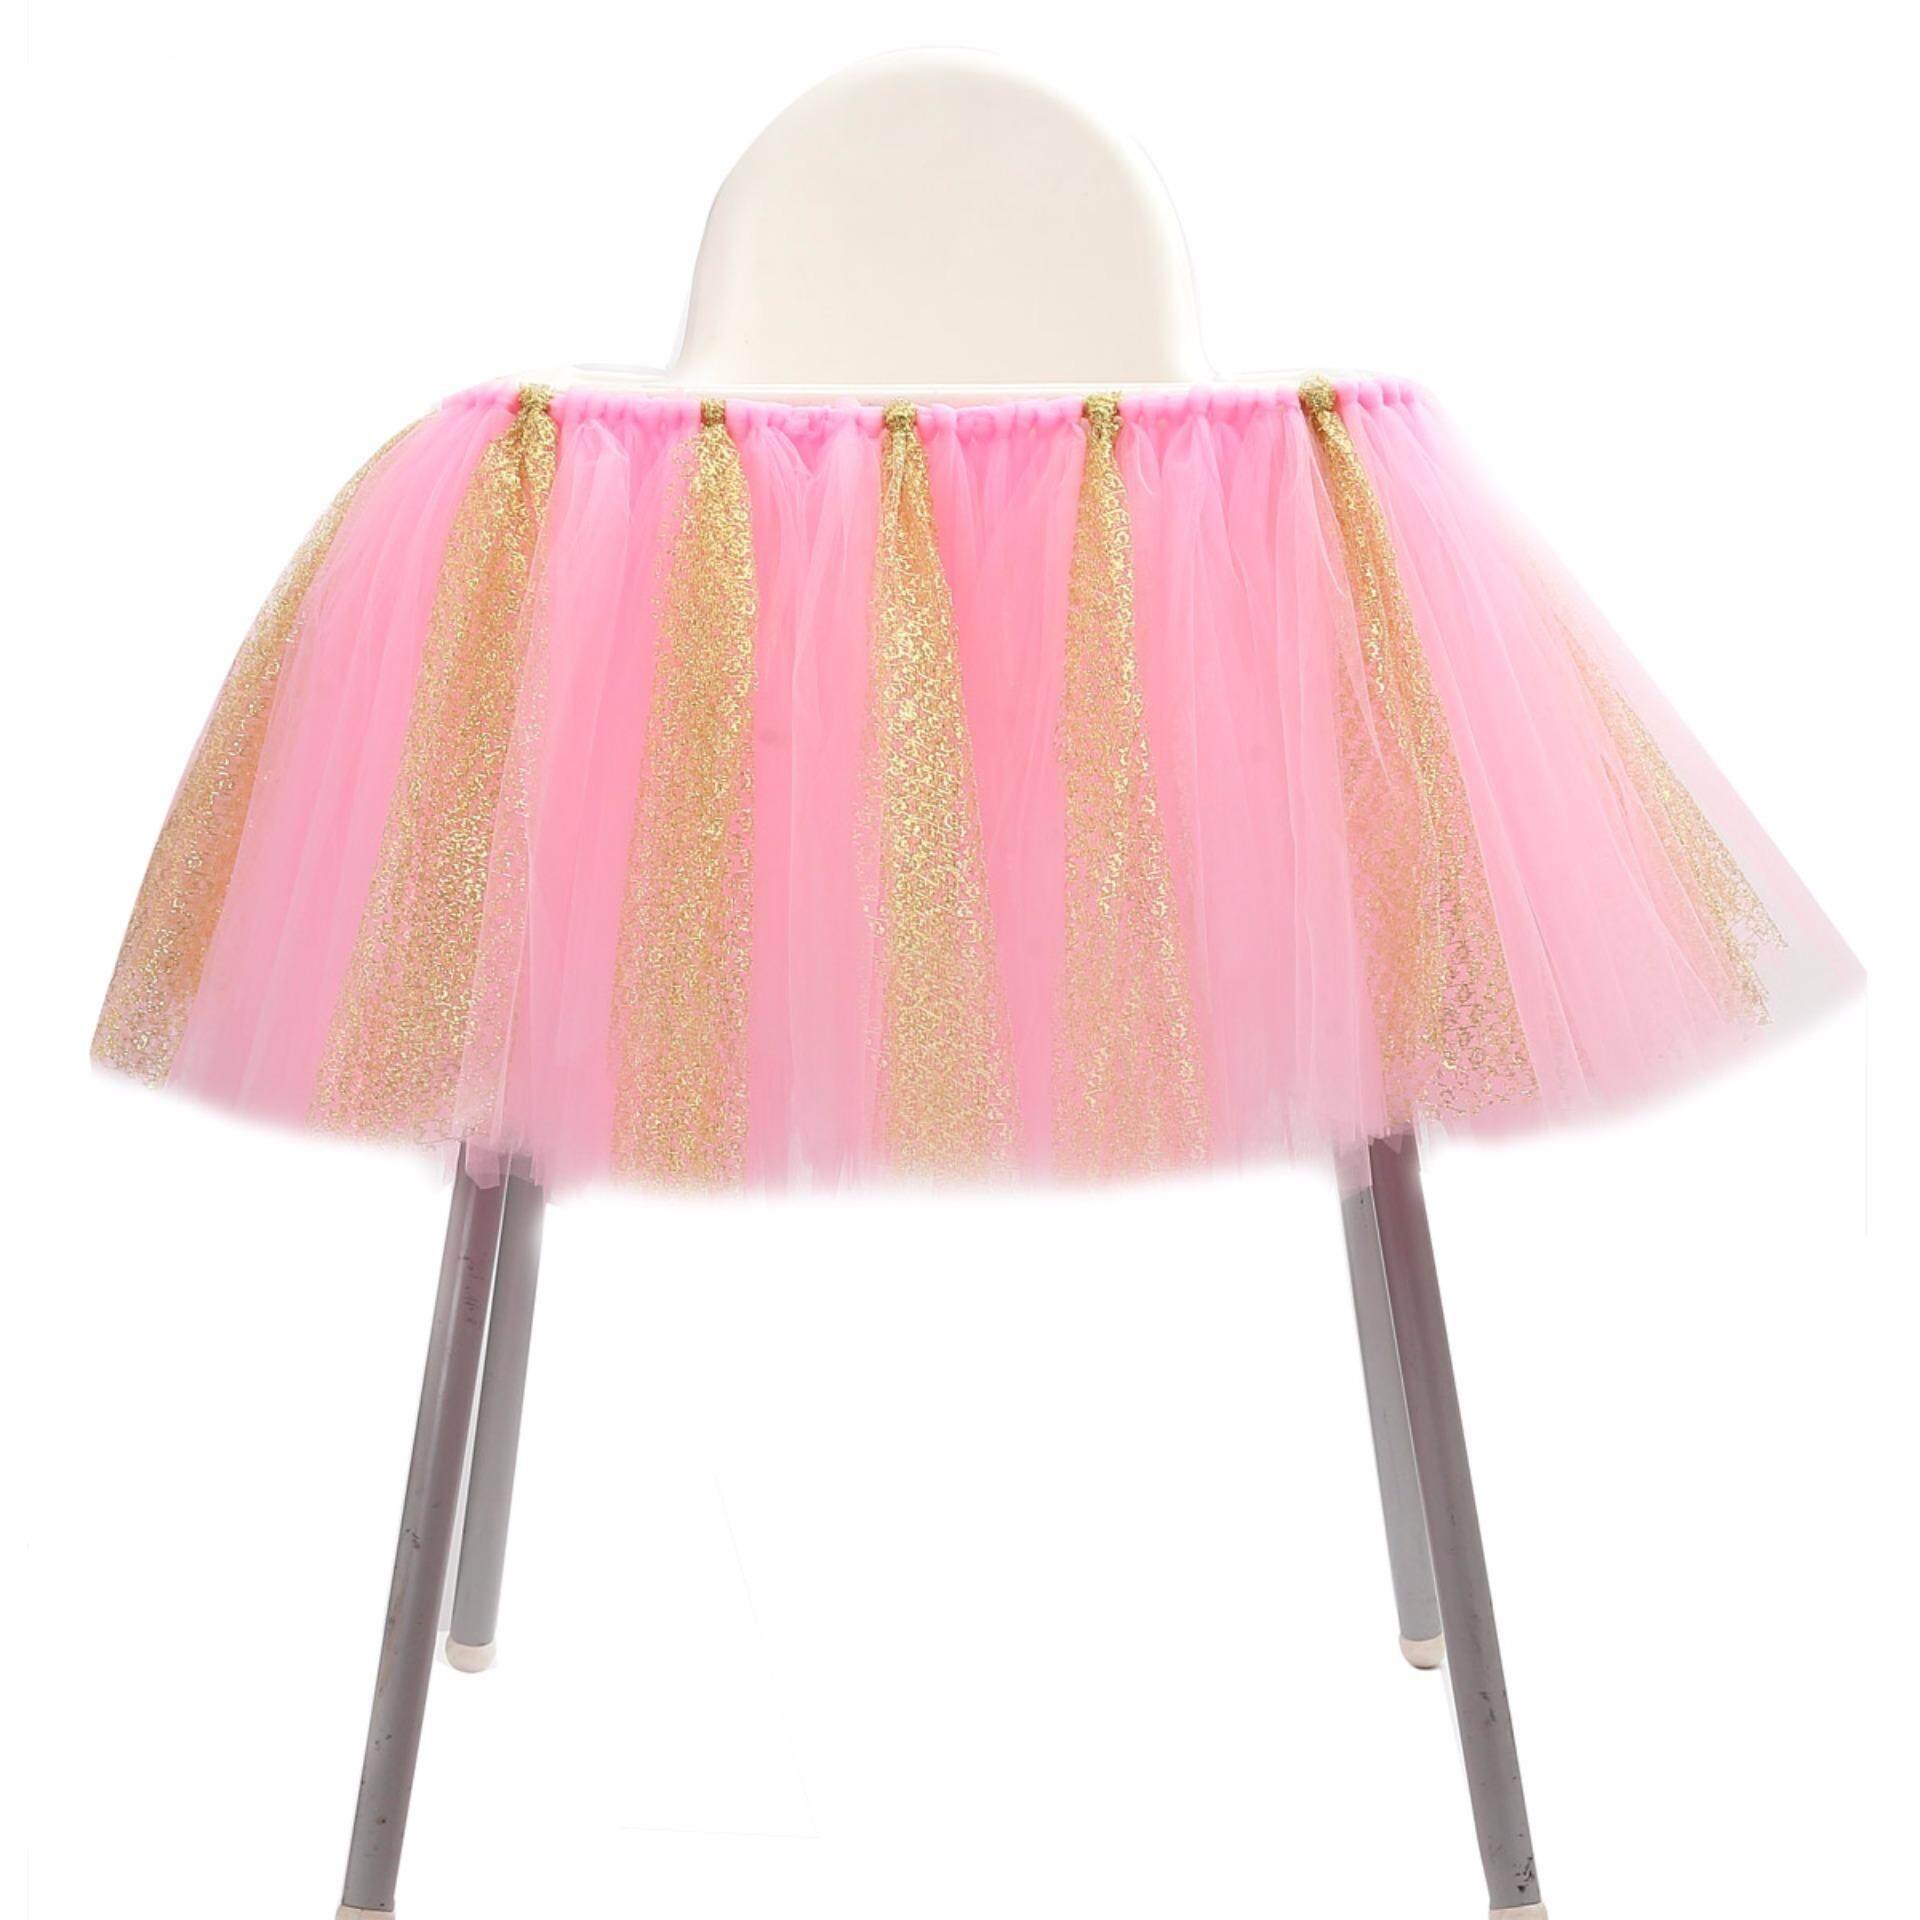 JNSS Adjustable Tutu Tulle Rok Bungkus untuk High Chair Baby Shower 1st Birthday Dekorasi-Intl